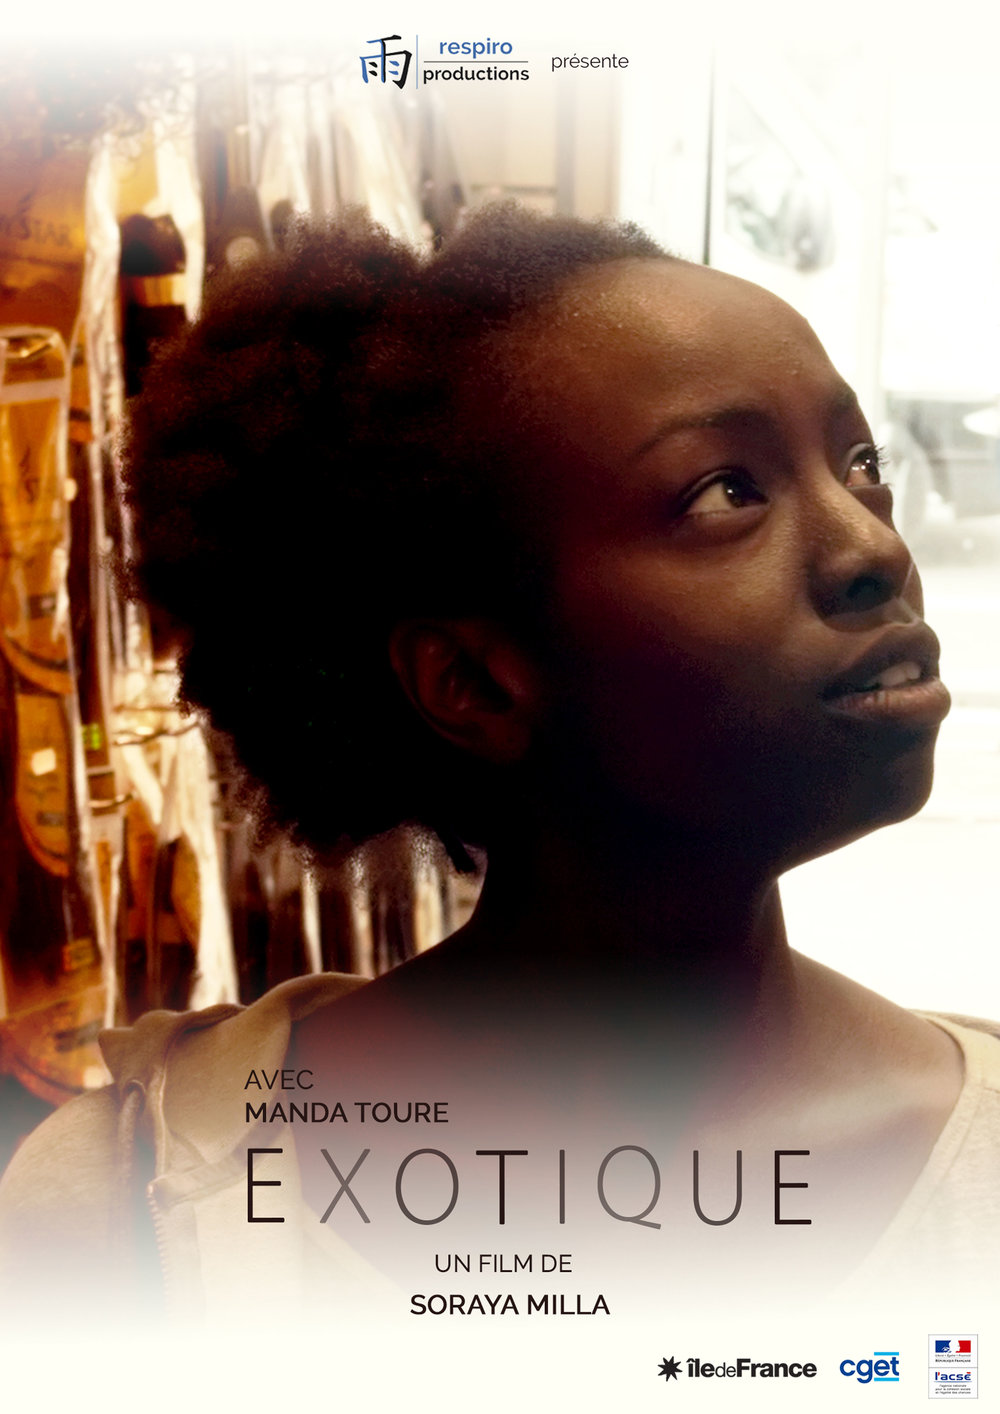 - EXOTIQUE, 2015 (France)Philomène, a Parisian teenager of African origin, loves Bastien, a guy in her class. But with her frizzy hair, she doesn't feel she has the weapons of seduction to challenge all those girls with sleek hair. So she gets a weave. Philomène lives this 'capillary change' as a metamorphosis.With a dexterous touch, 'Exotic' explores issues of integration, standards of beauty, othering, and micro-aggressions in a sweet rather than an in-your-face way, making it a tragi-comic delight.Director: Soraya MillaLength: 18 minWhere and when: Deptford Cinema, Saturday 2 December, 16:00 - screened alongside Toprak and El Futuro PerfectoPrice and tickets: £4.50-6, buy a ticket here